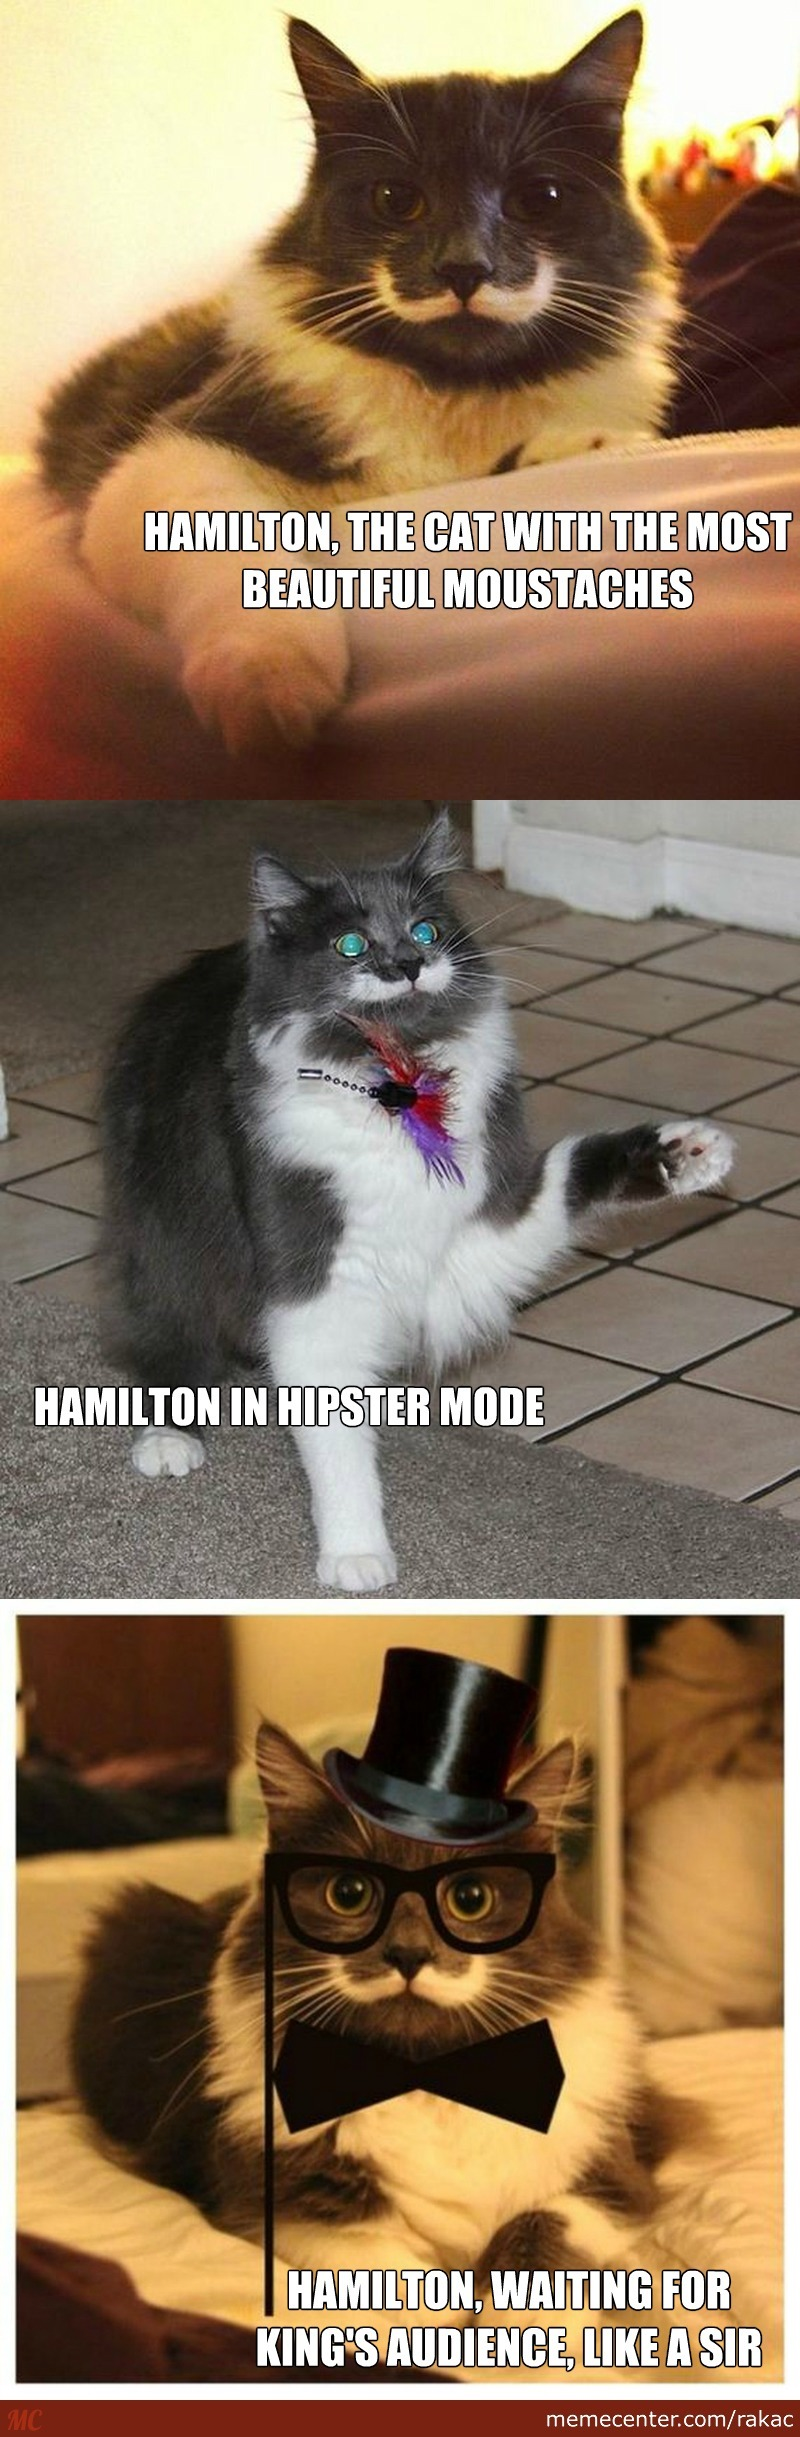 Hamilton The Fabulous